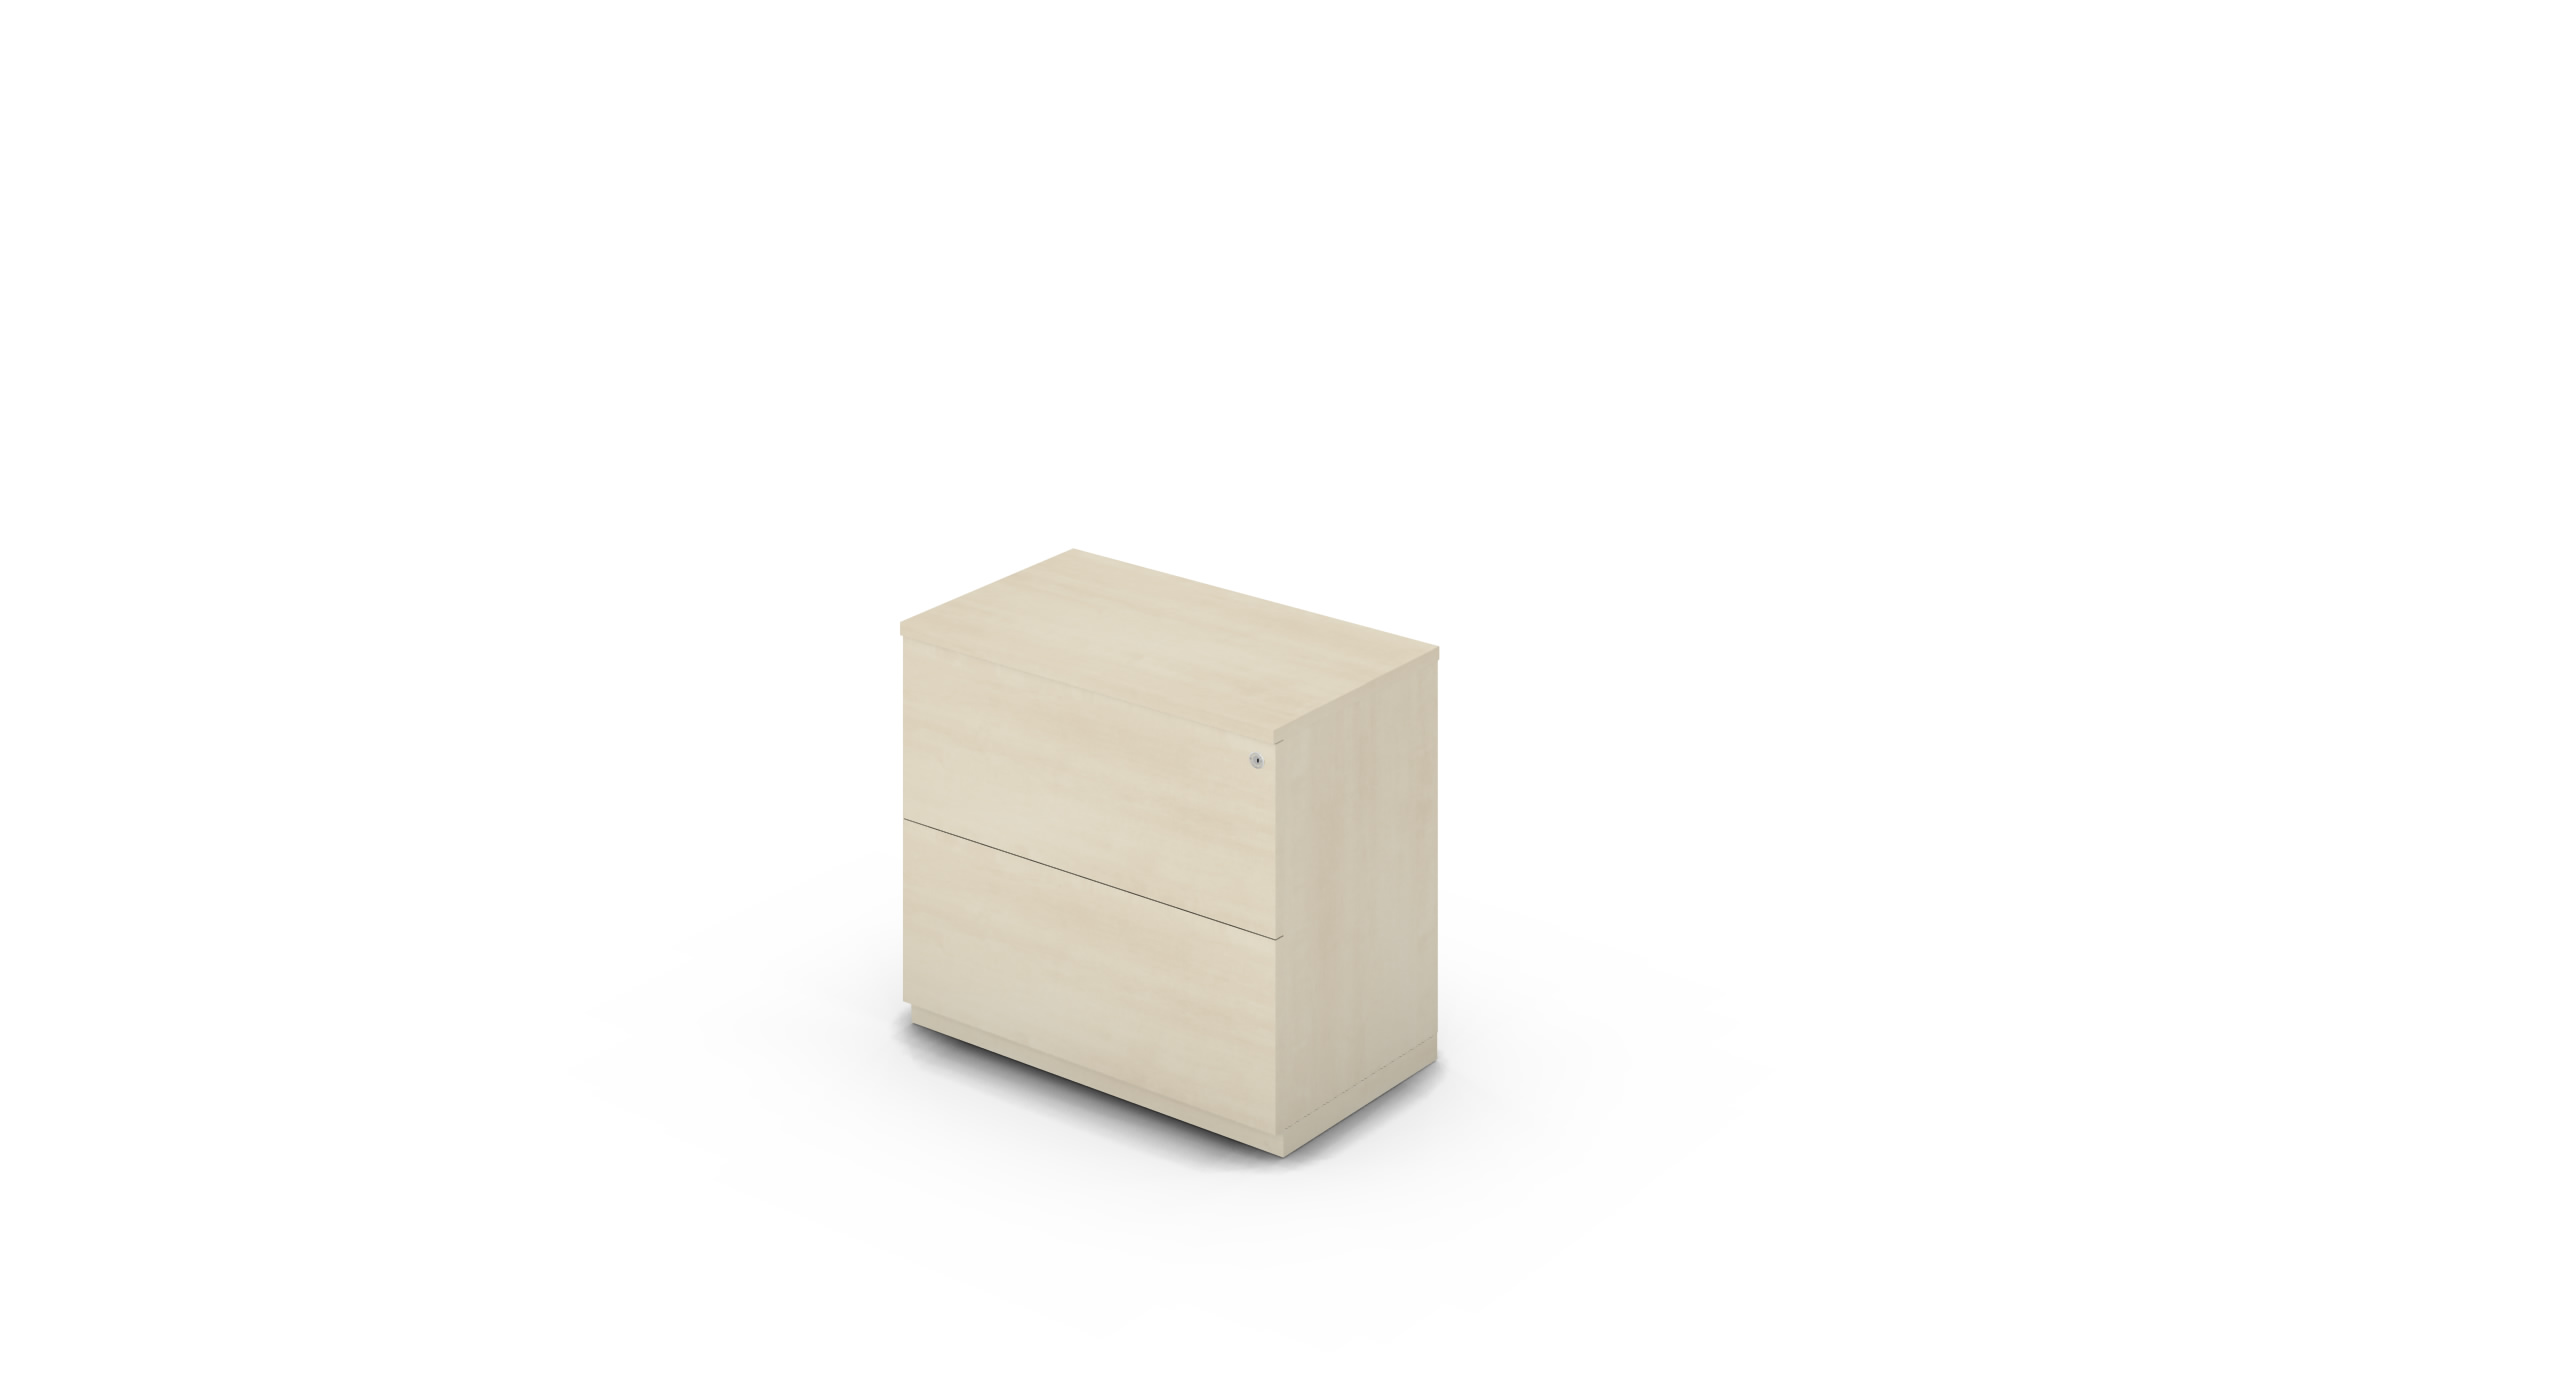 Cabinet_800x450x775_DR_Maple_Push_WithCylinder